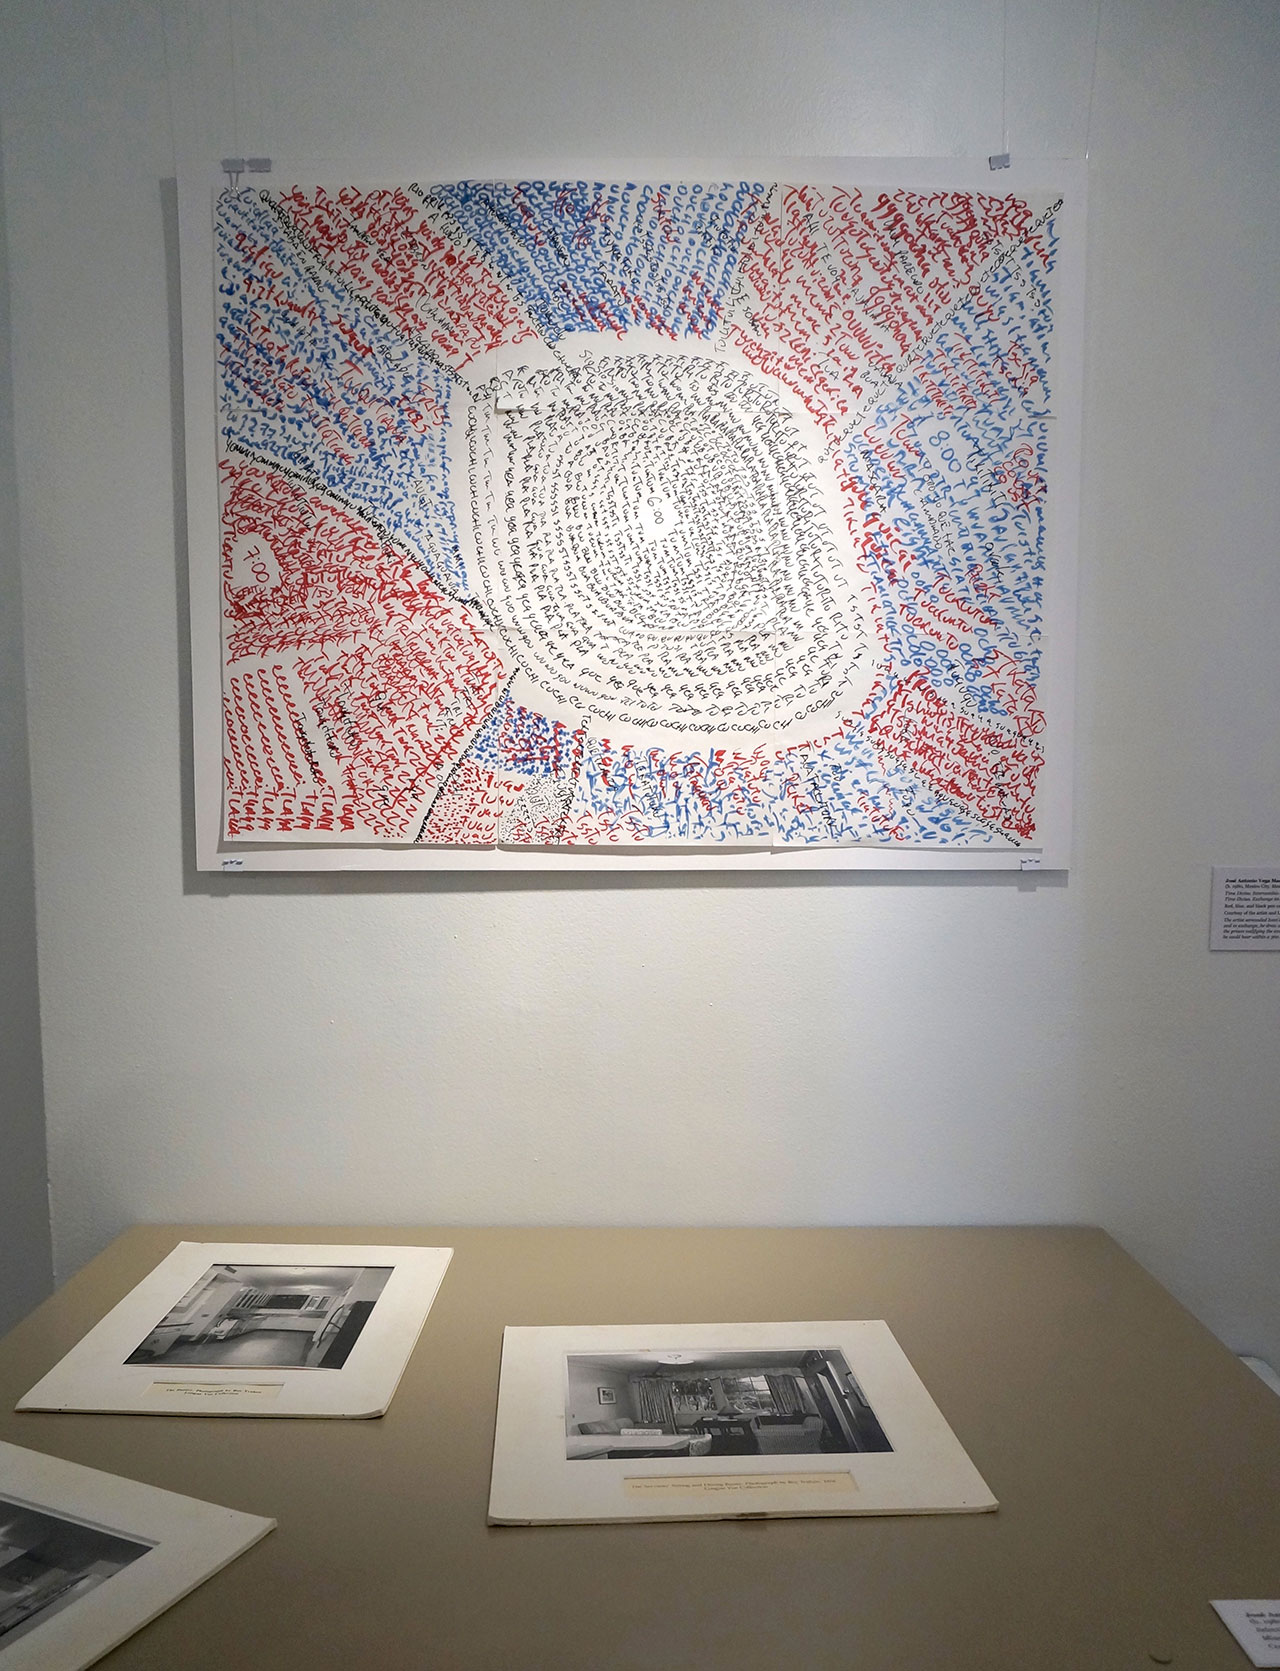 """José Antonio Vega Macotela, """"Time Divisa. Intercambio 66"""" (2007), red, blue, and black pen on paper. """"The artist serenaded Ivan's mother at her home and in exchange, he drew an acoustic map of the prison codifying the environmental sounds he could hear within a 360 degree radius."""" (click to enlarge)"""